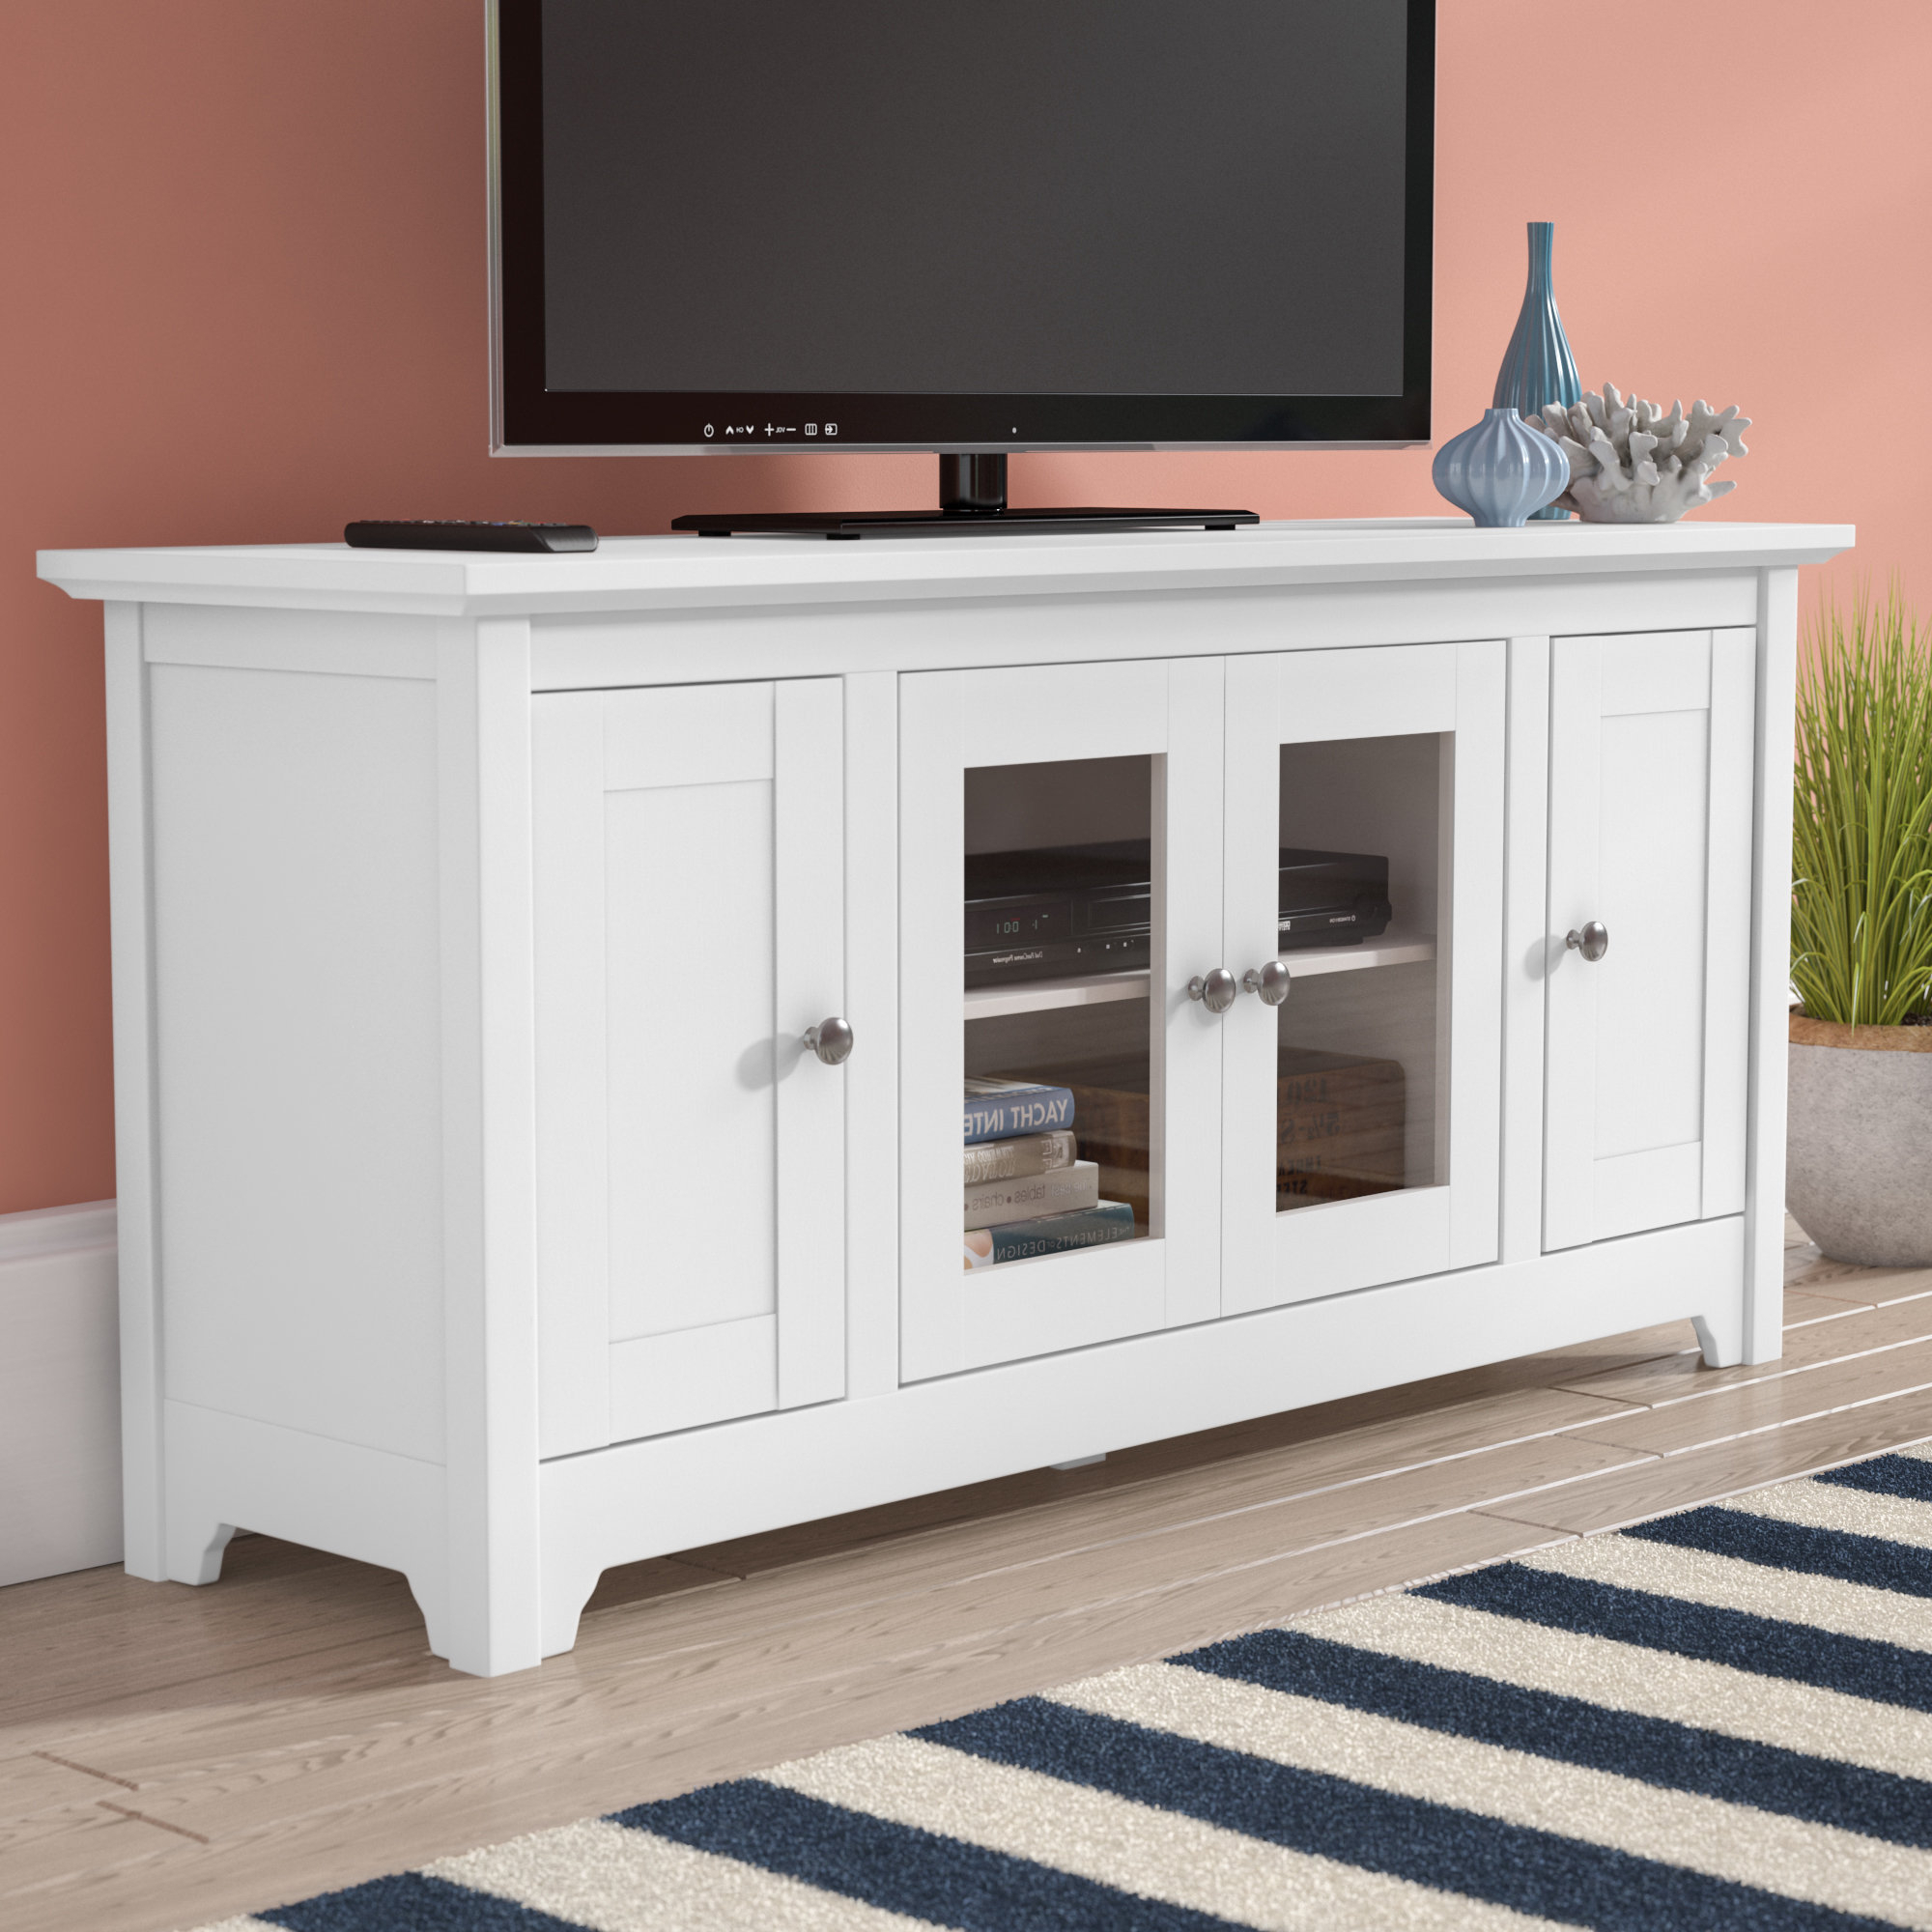 Ducar 74 Inch Tv Stands Regarding Favorite Tv Stands & Entertainment Centers You'll Love (View 20 of 20)